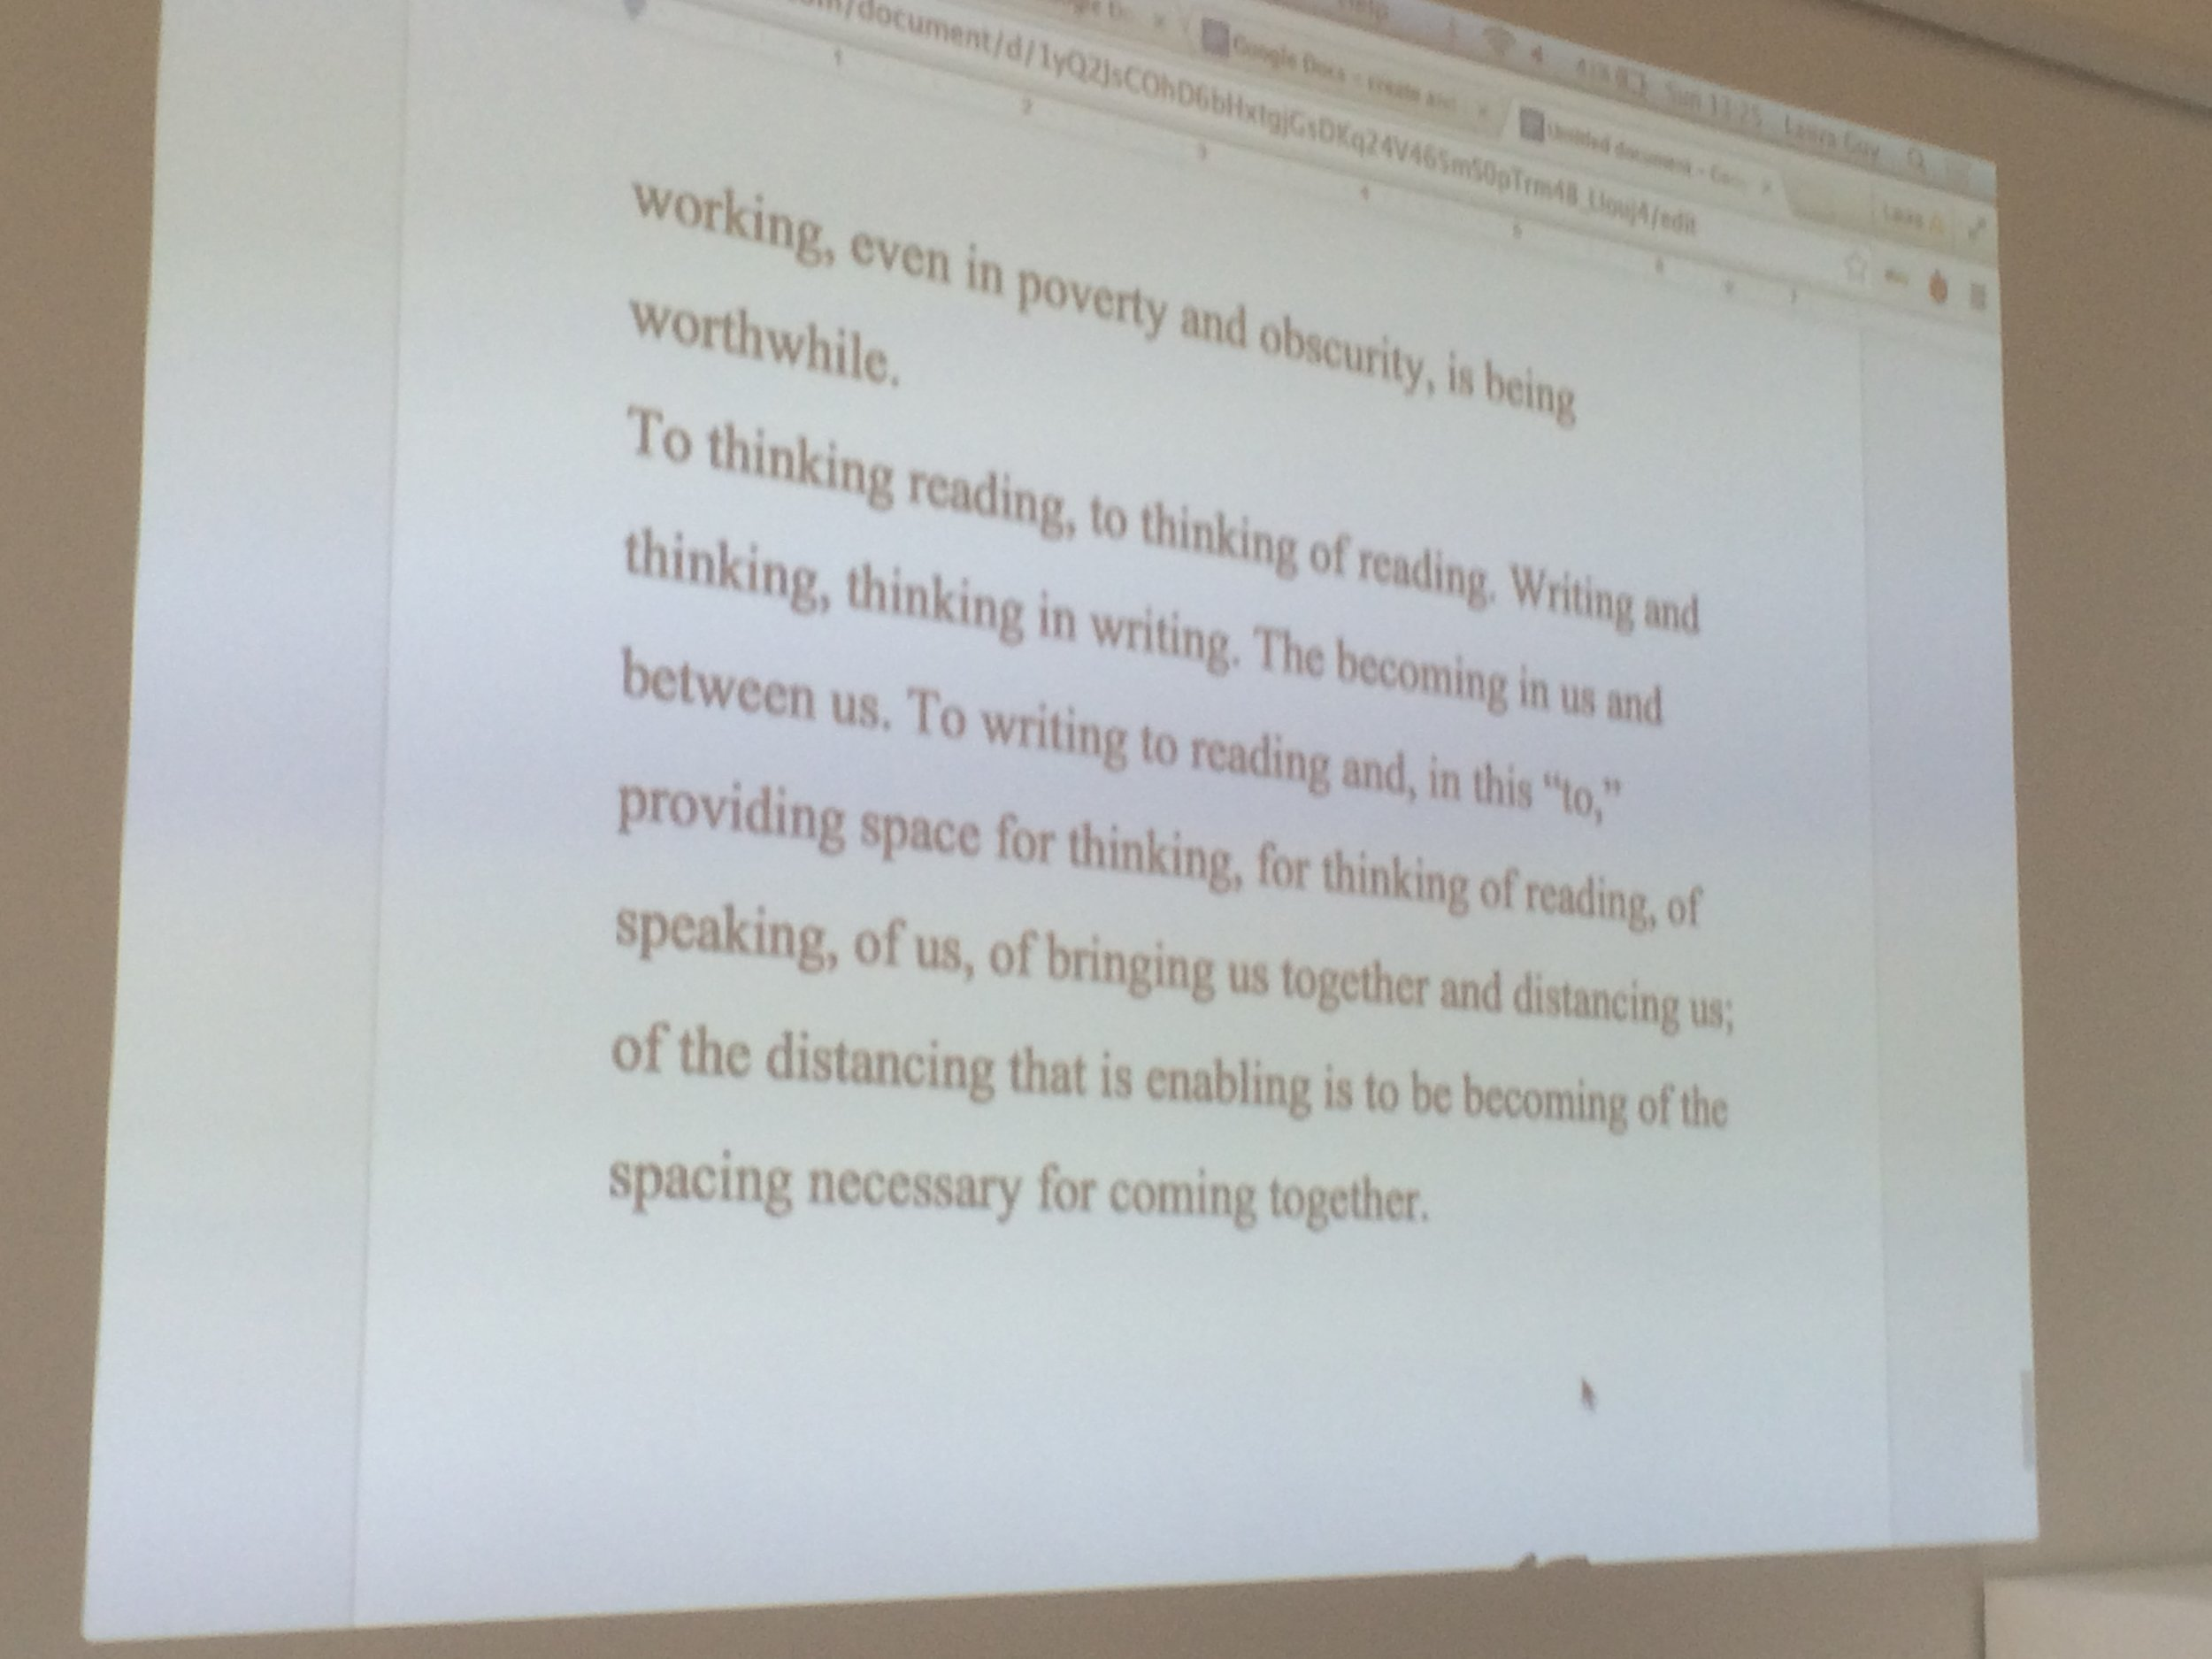 Writing exercise as part of Intimate Acts workshop led by Kajsa Dahlberg and Laura Guy, The Showroom, London, as part of Now You Can Go, December 2015. Photo: Helena Reckitt